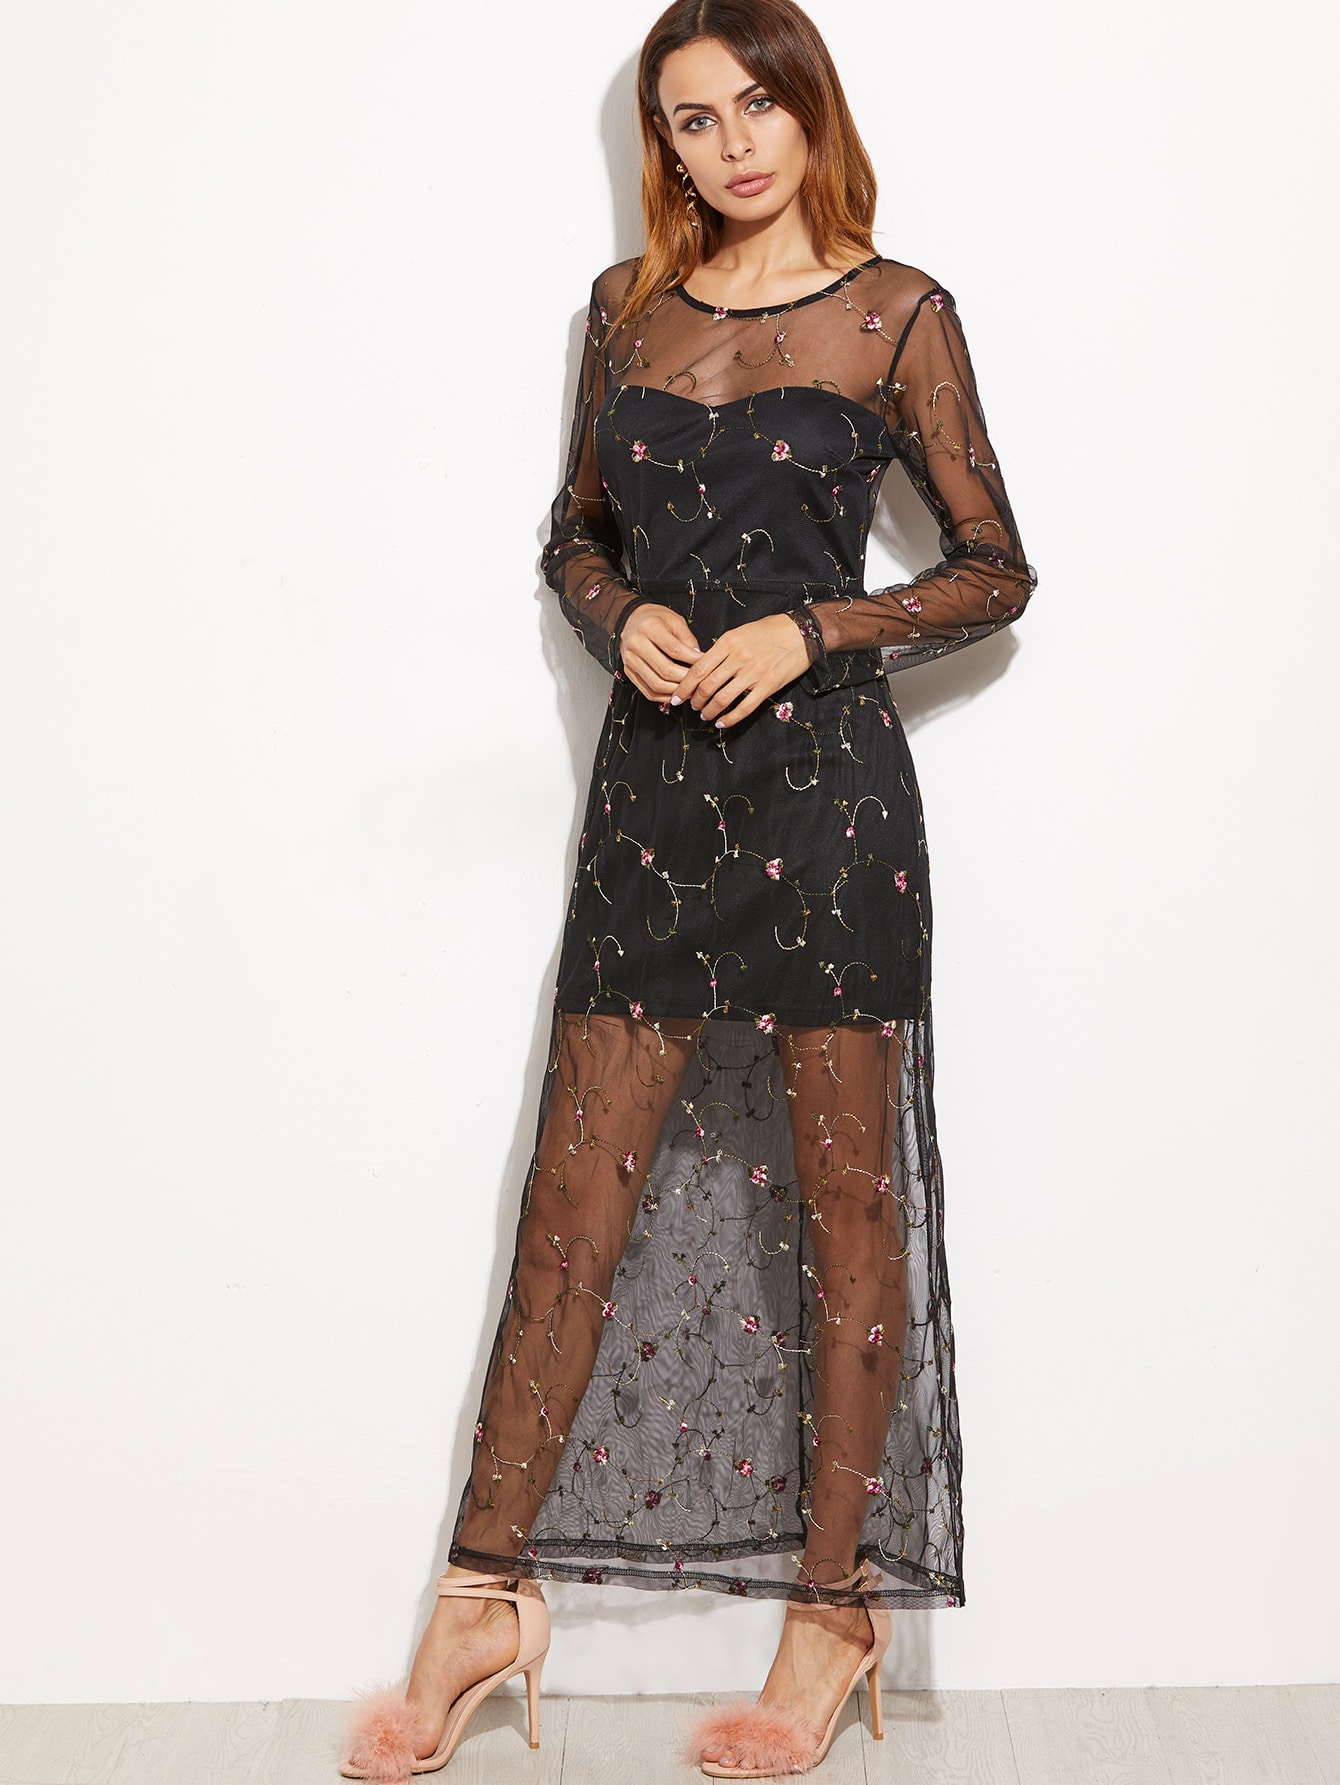 Black Sheer Mesh Embroidered DressBlack Sheer Mesh Embroidered Dress<br><br>color: Black<br>size: M